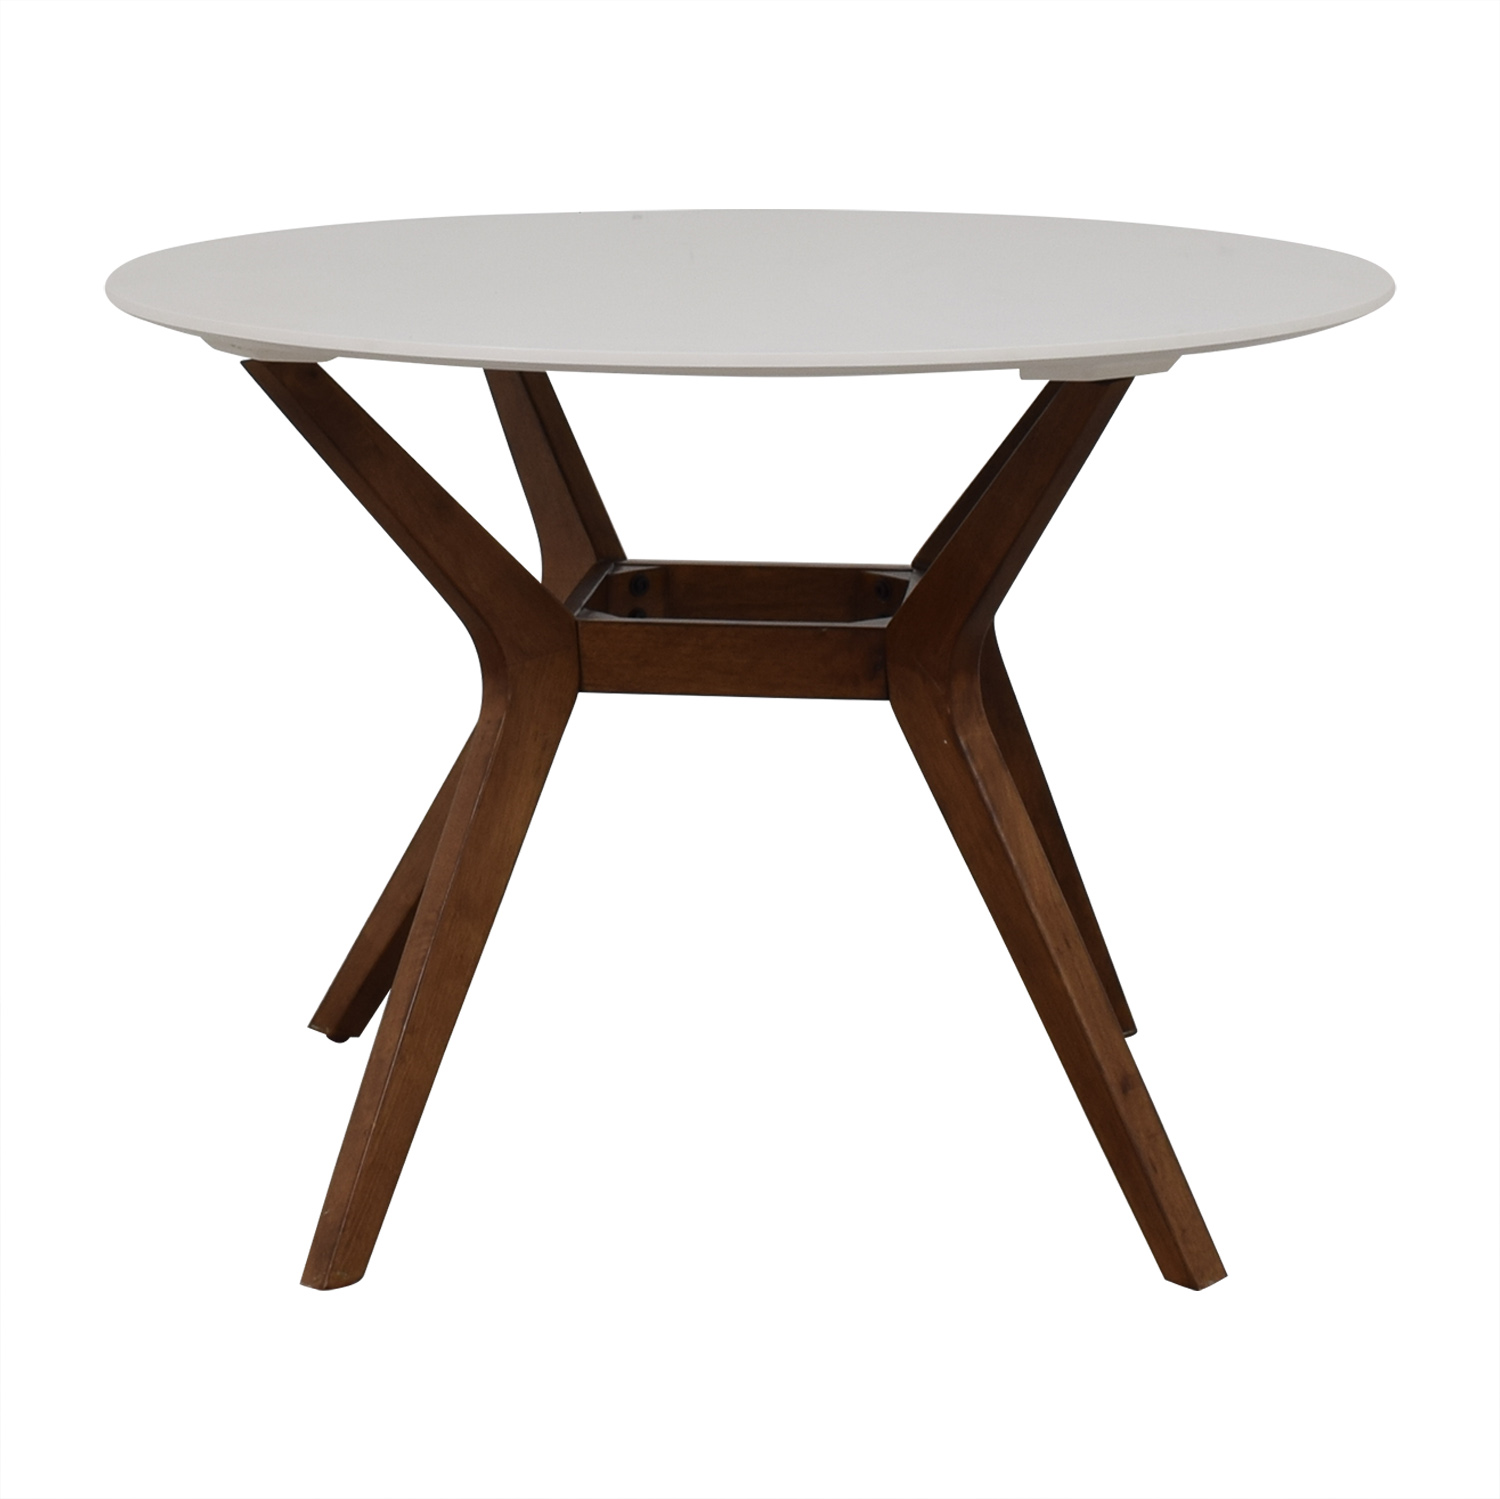 buy Project 62 by Target Project 62 by Target White Wooden Dining Table online